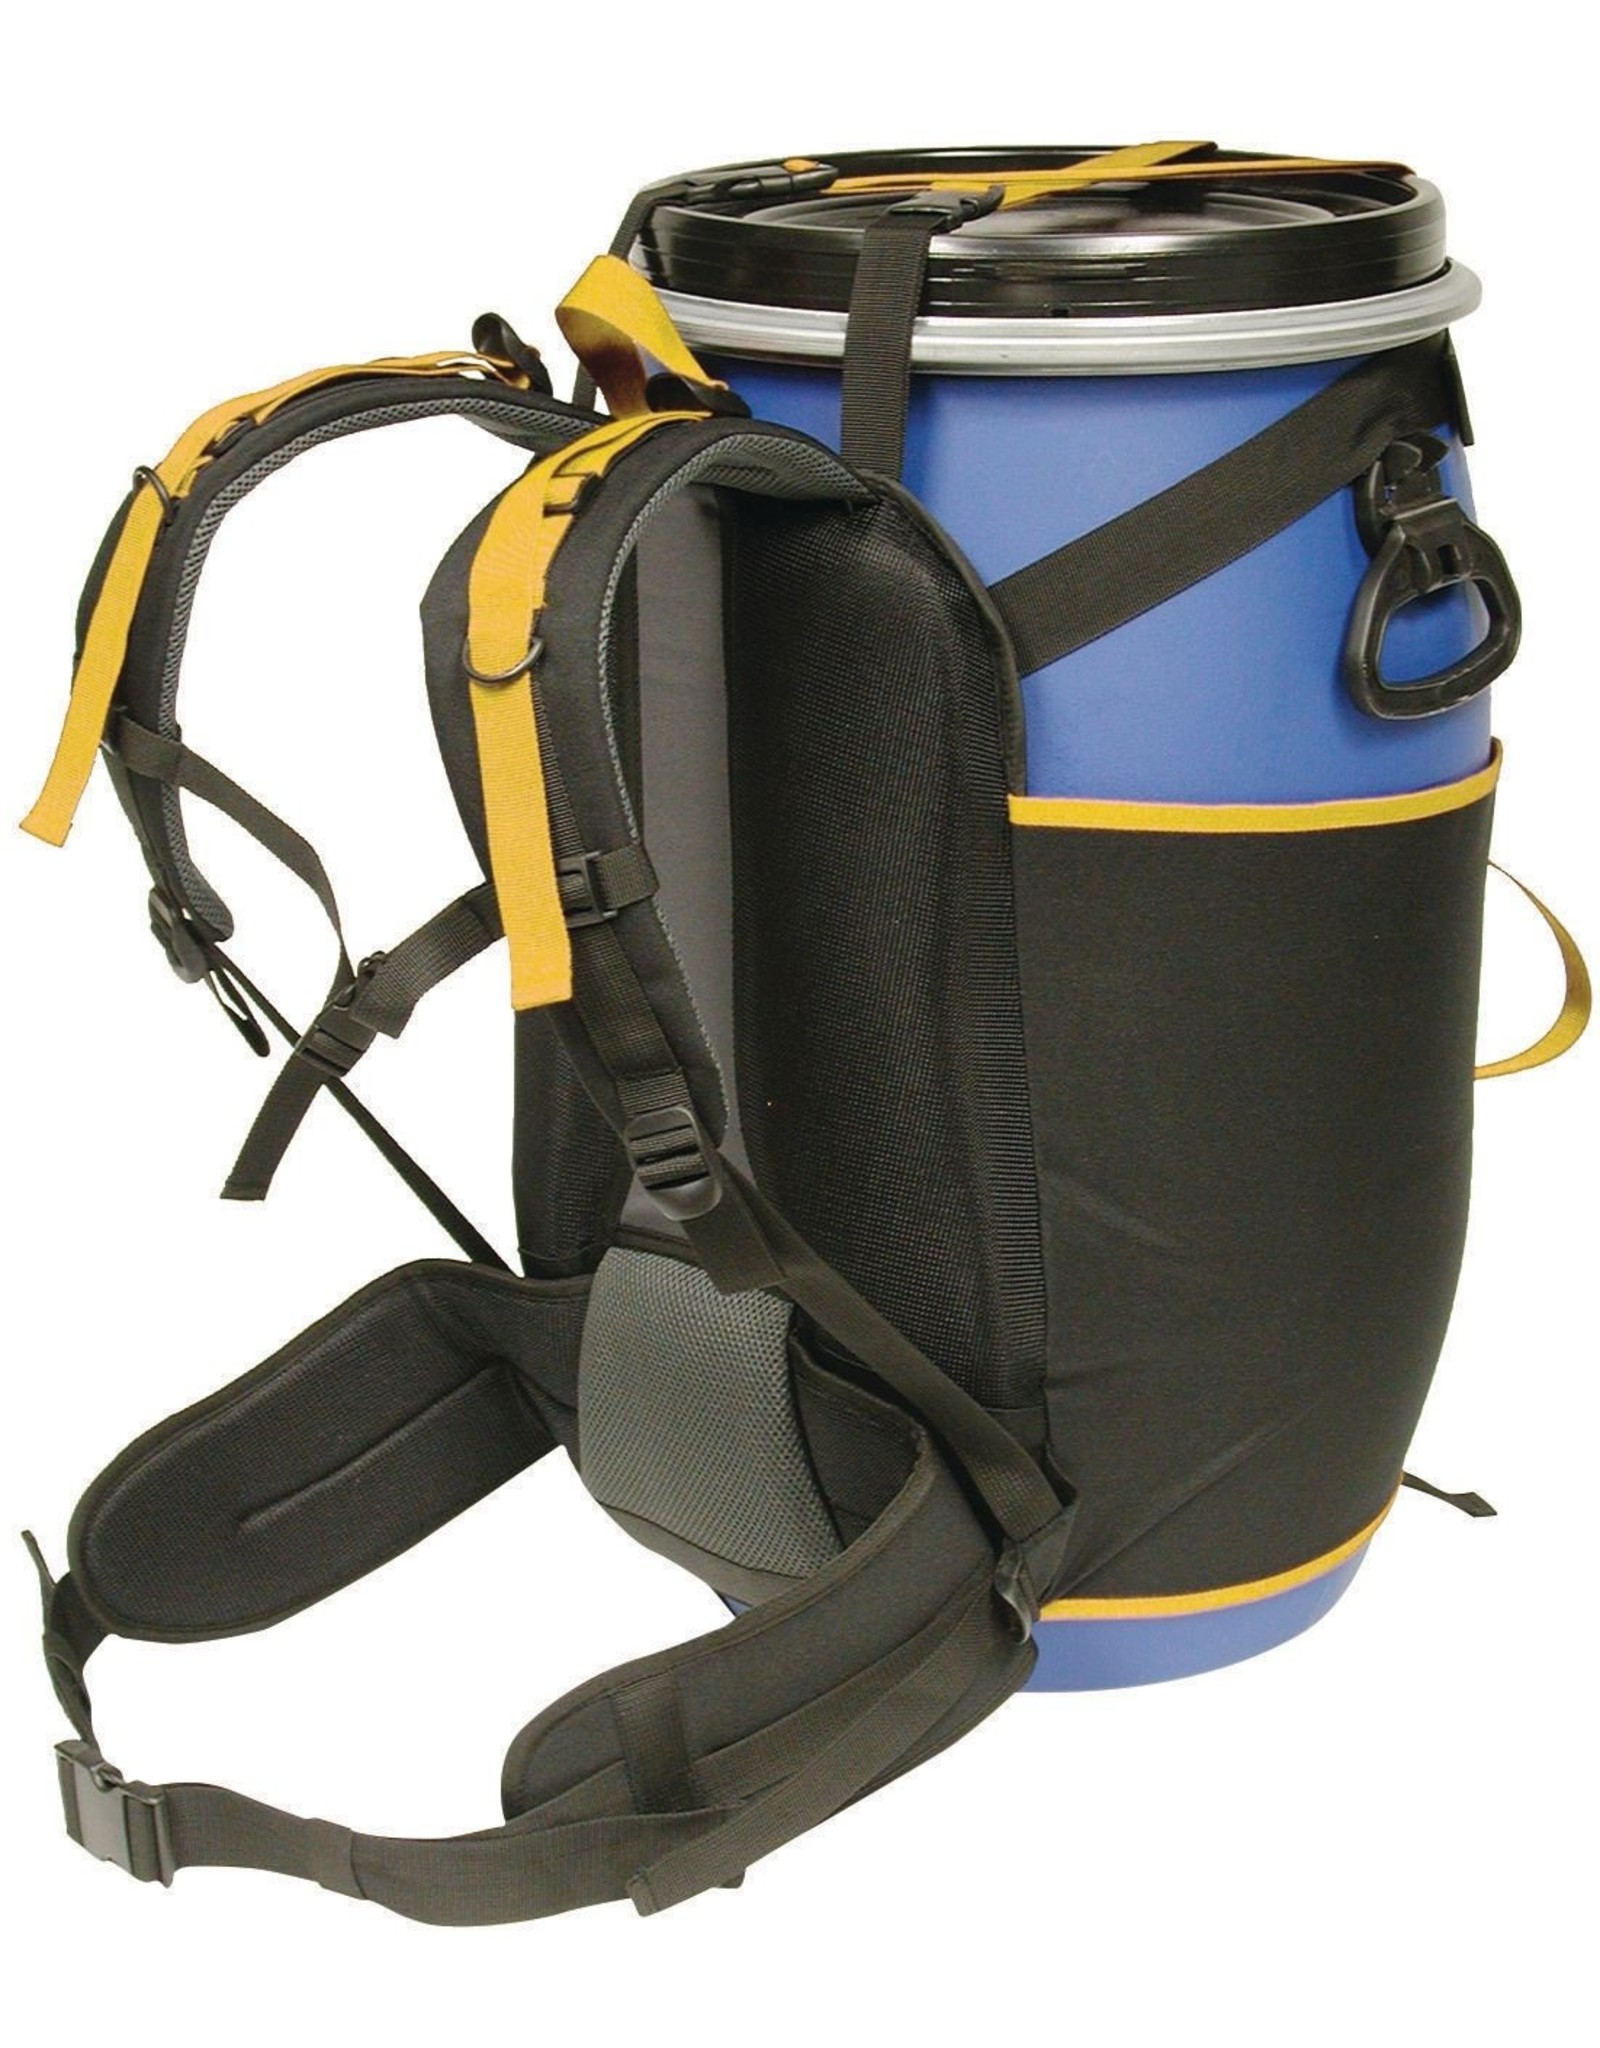 WORLD FAMOUS SALES North 49 - Barrel Harness, 50-60 Litre Barrels